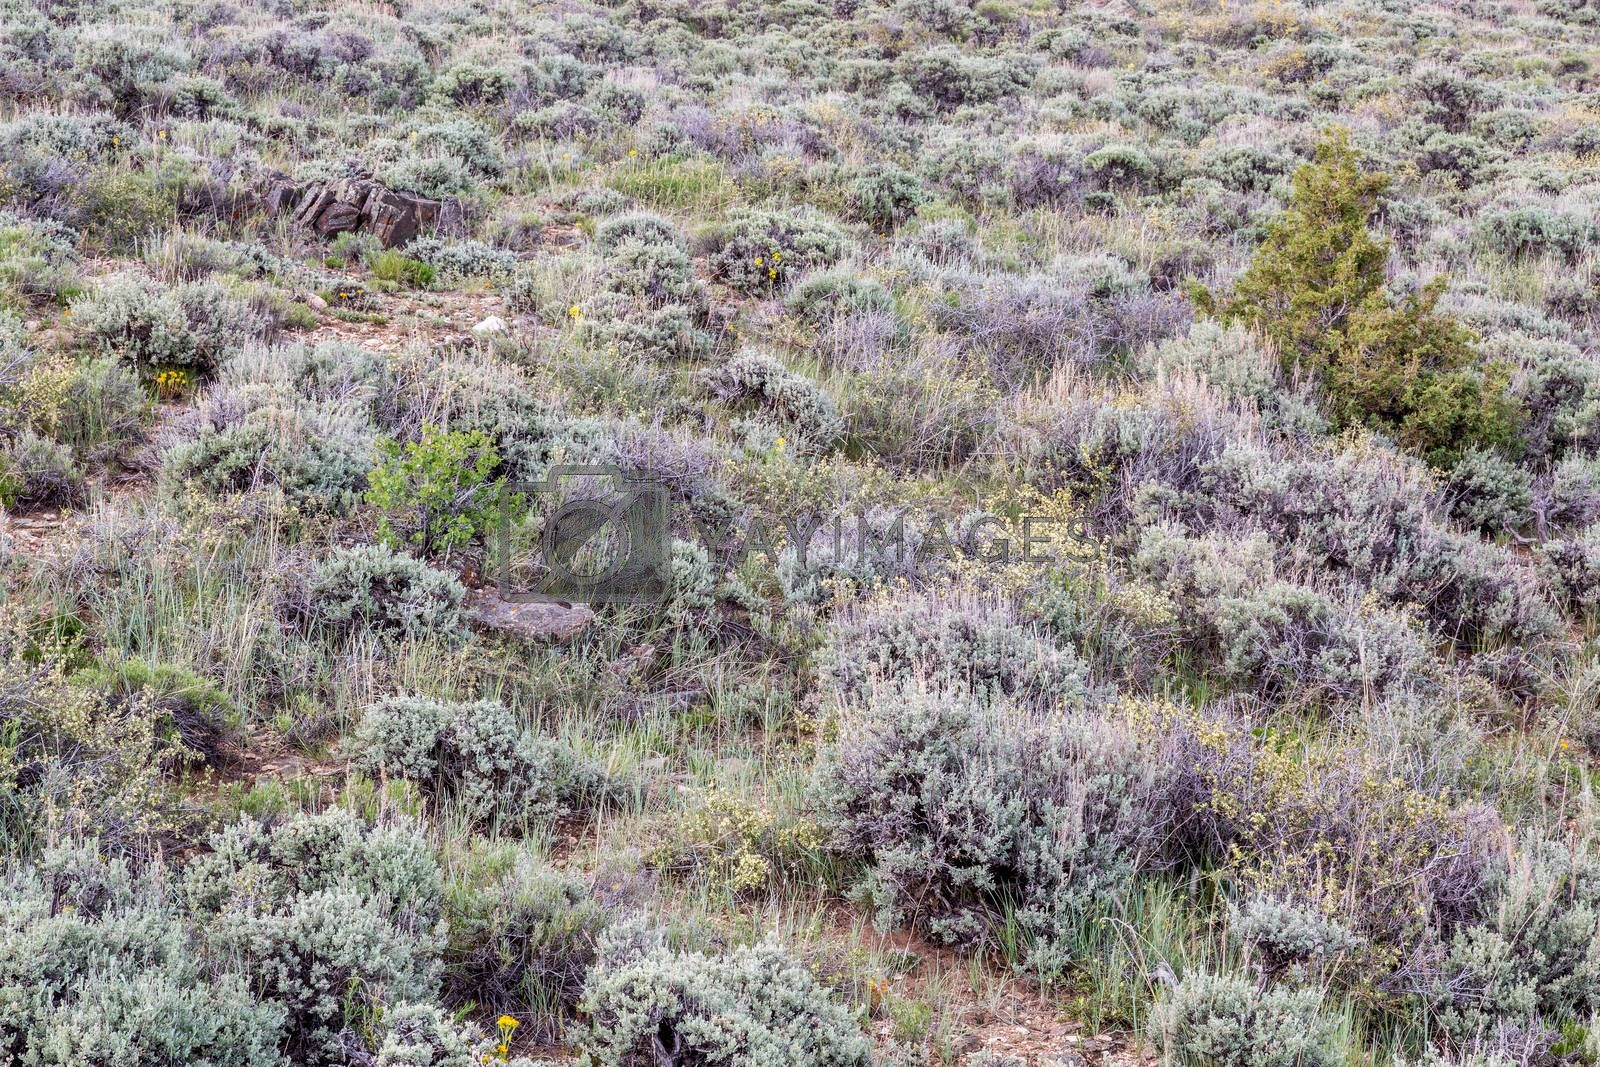 Royalty free image of sagebrush, wildflowers and other shrubs by PixelsAway